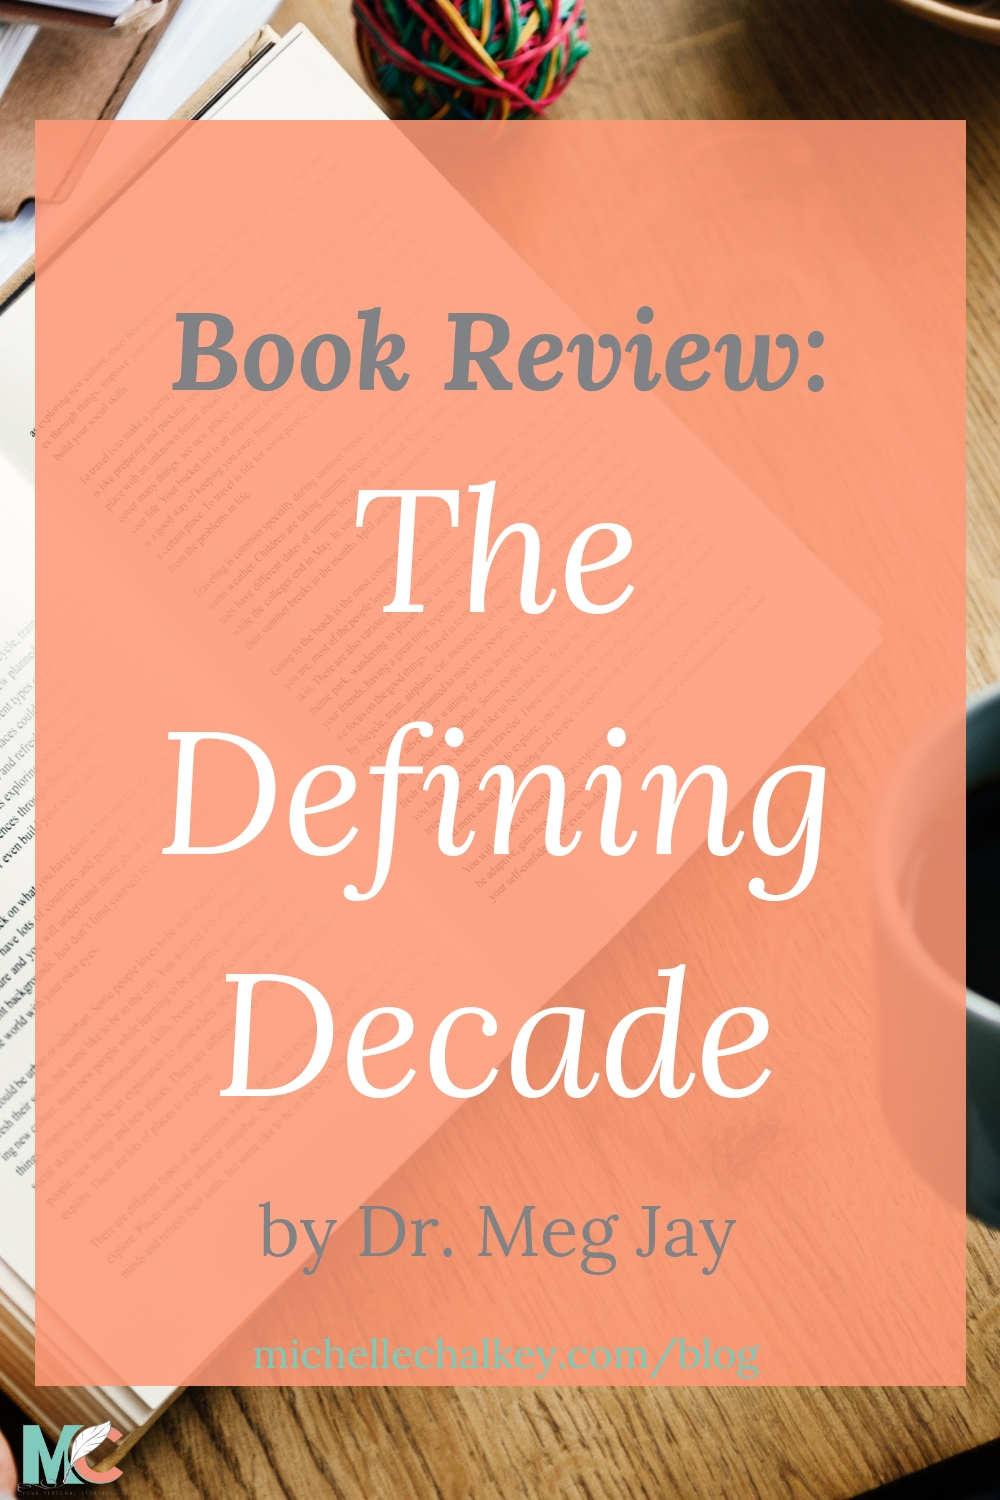 20-somethings, this book is a must read! Check out The Defining Decade by Dr. Meg Jay. #bookreview #bookstoread #twentysomething